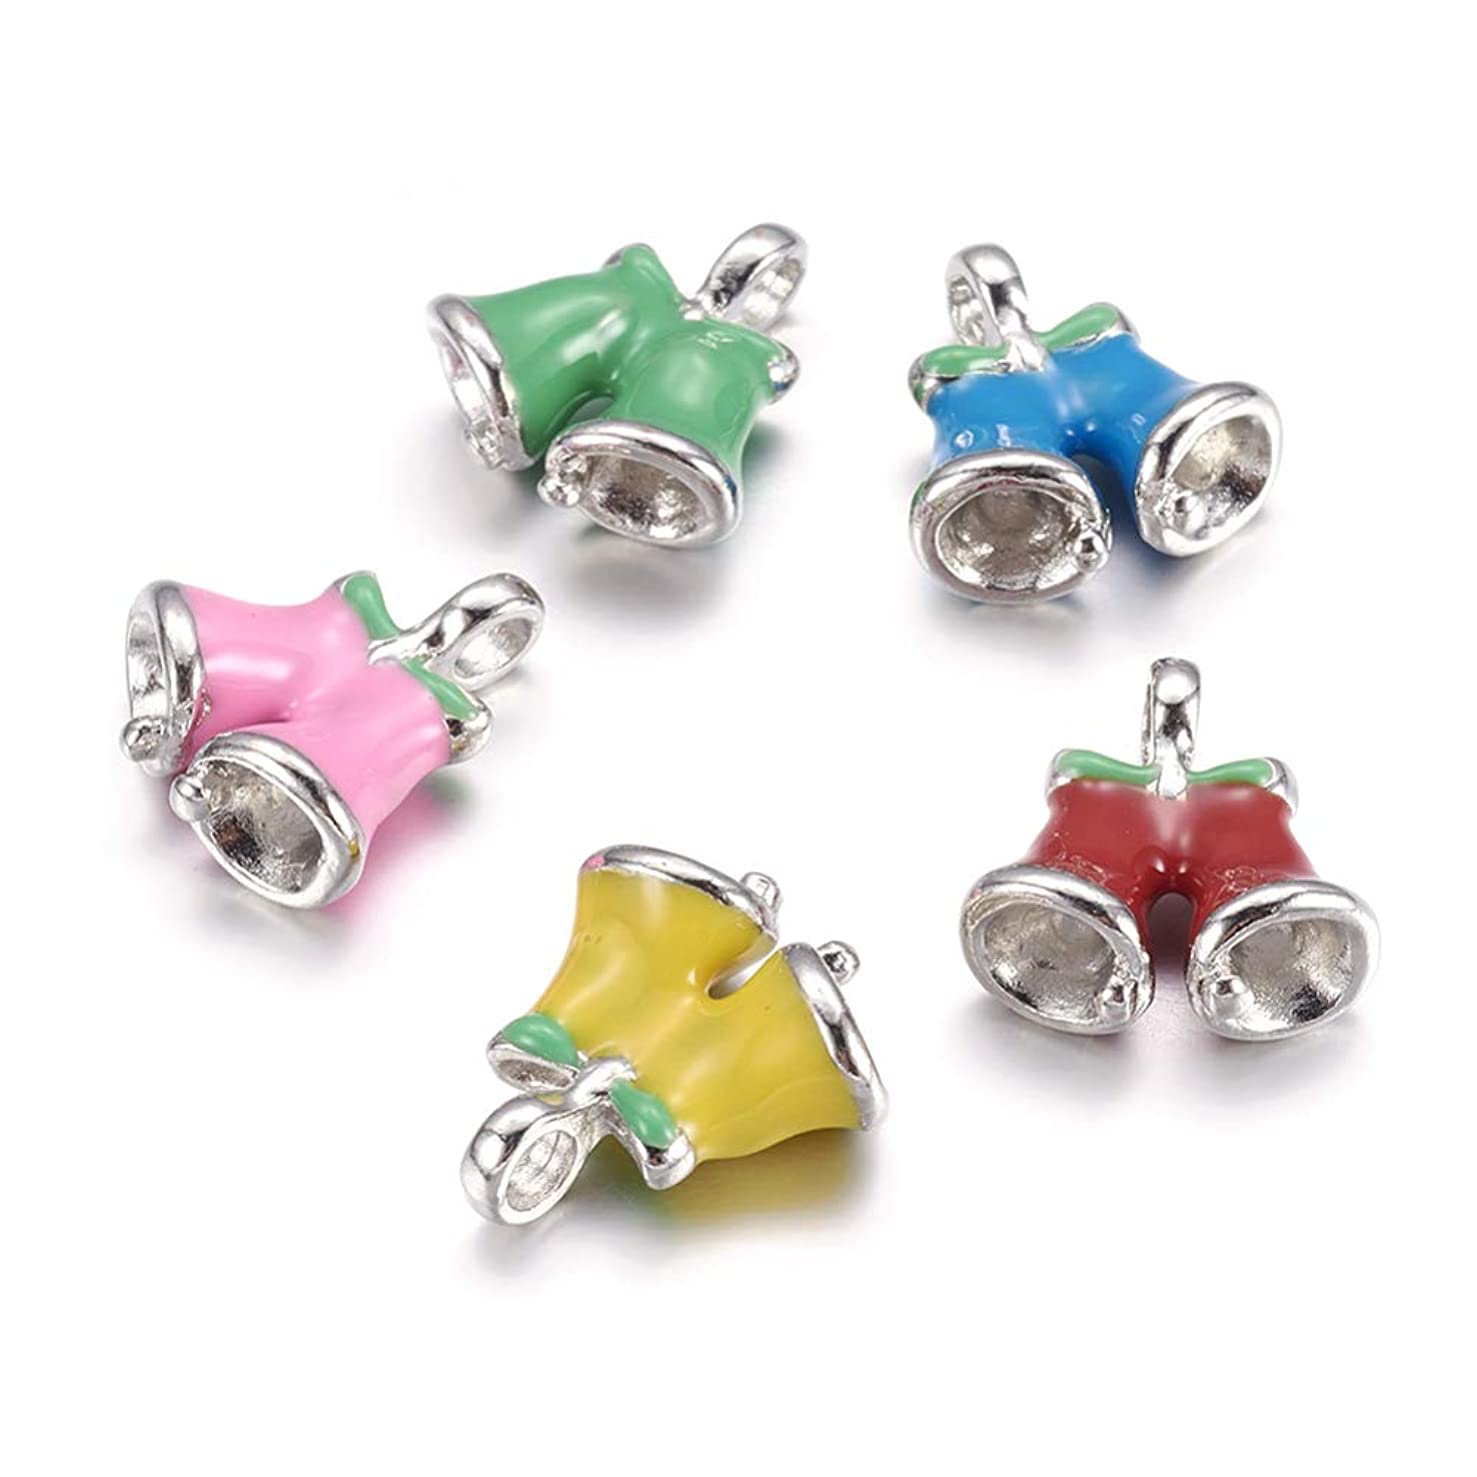 Craftdady 10Pcs Mixed Color Christmas Bell Alloy Enamel Charms 19x17mm DIY Jewelry Necklace Earring Bracelet Christmas Gifts Decoration Craft Making Pendants with 2.5mm Hole